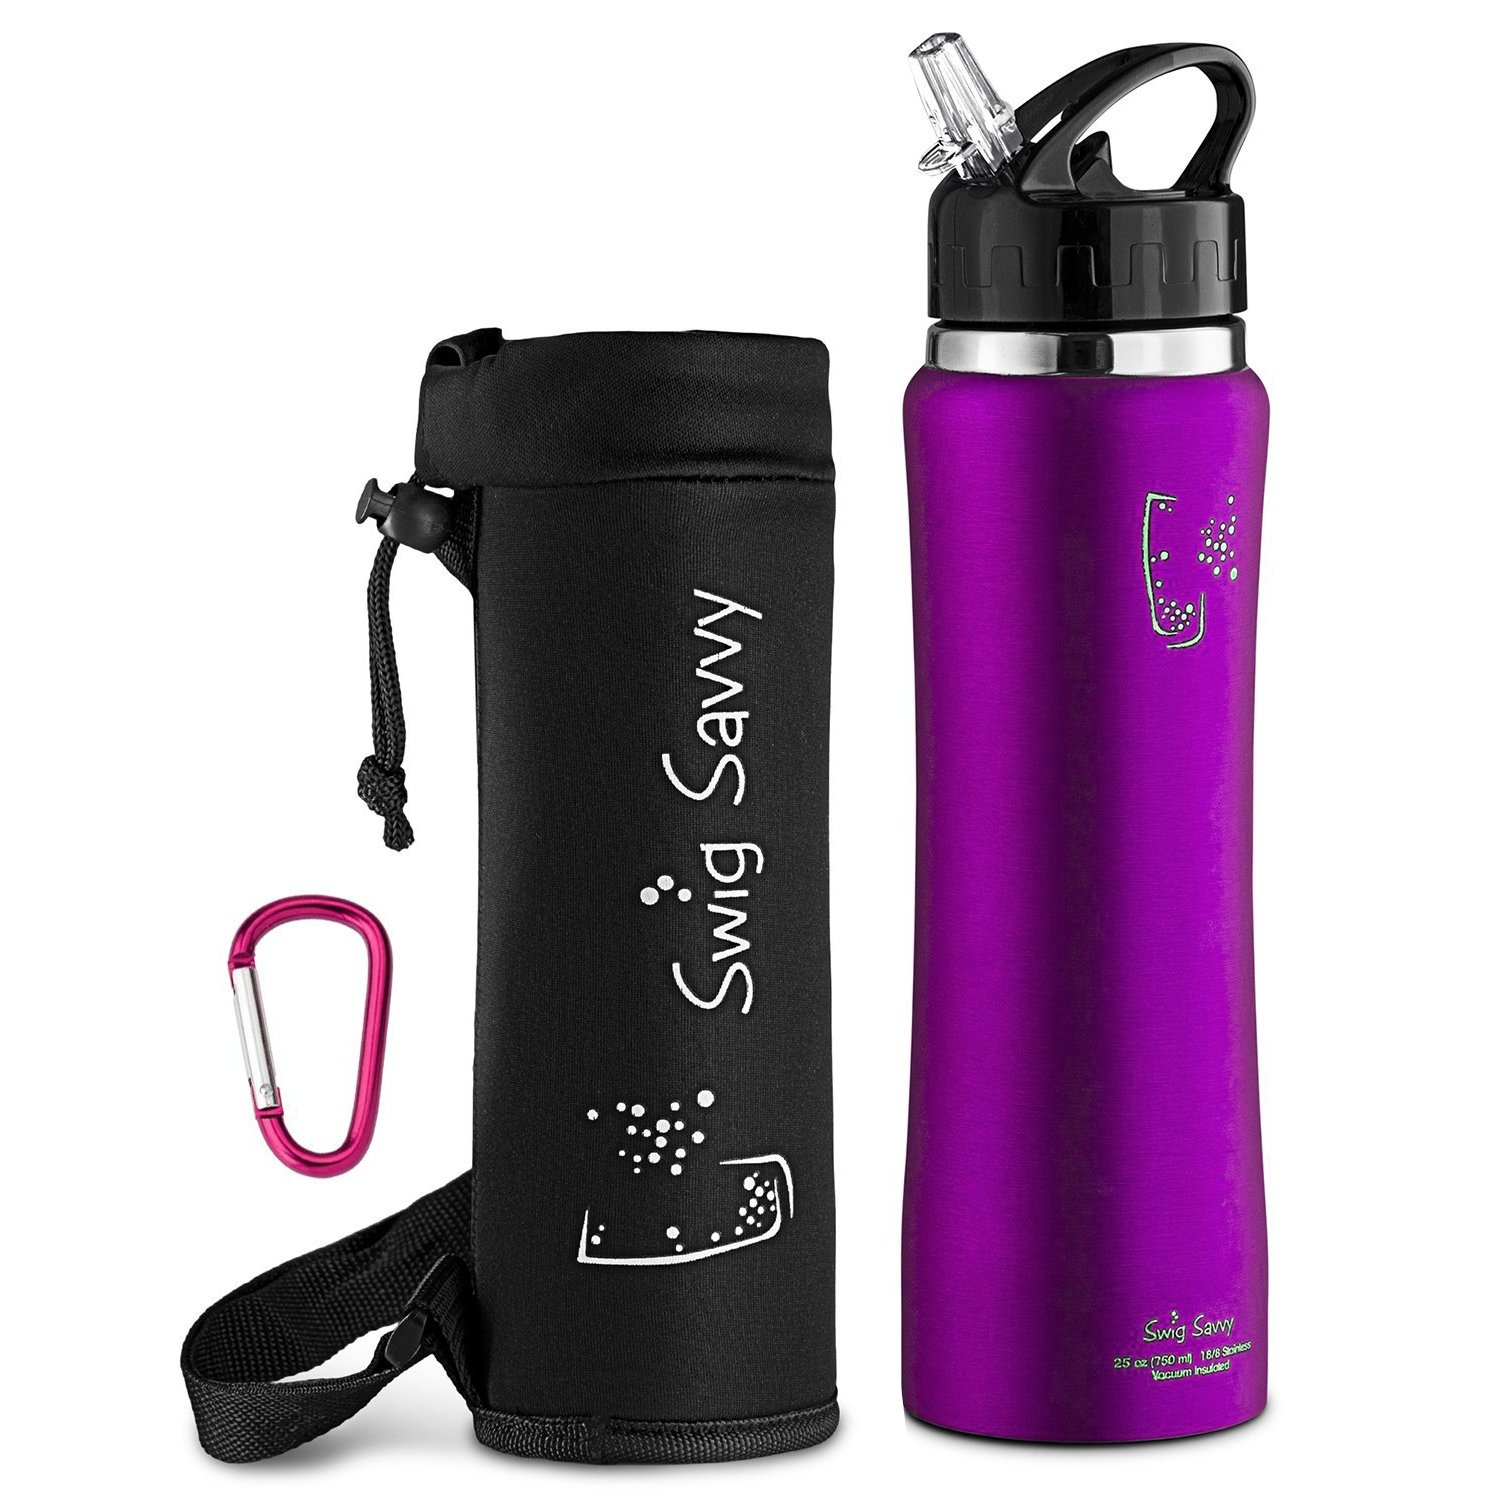 SWIG SAVVY Stainless Steel Insulated Water Bottle Wide Mouth 24oz / 32oz Double Wall Design with Straw Flip Cap - Great for Kids - Sweat Proof - Including Water Bottles Pouch (Purple, 24)